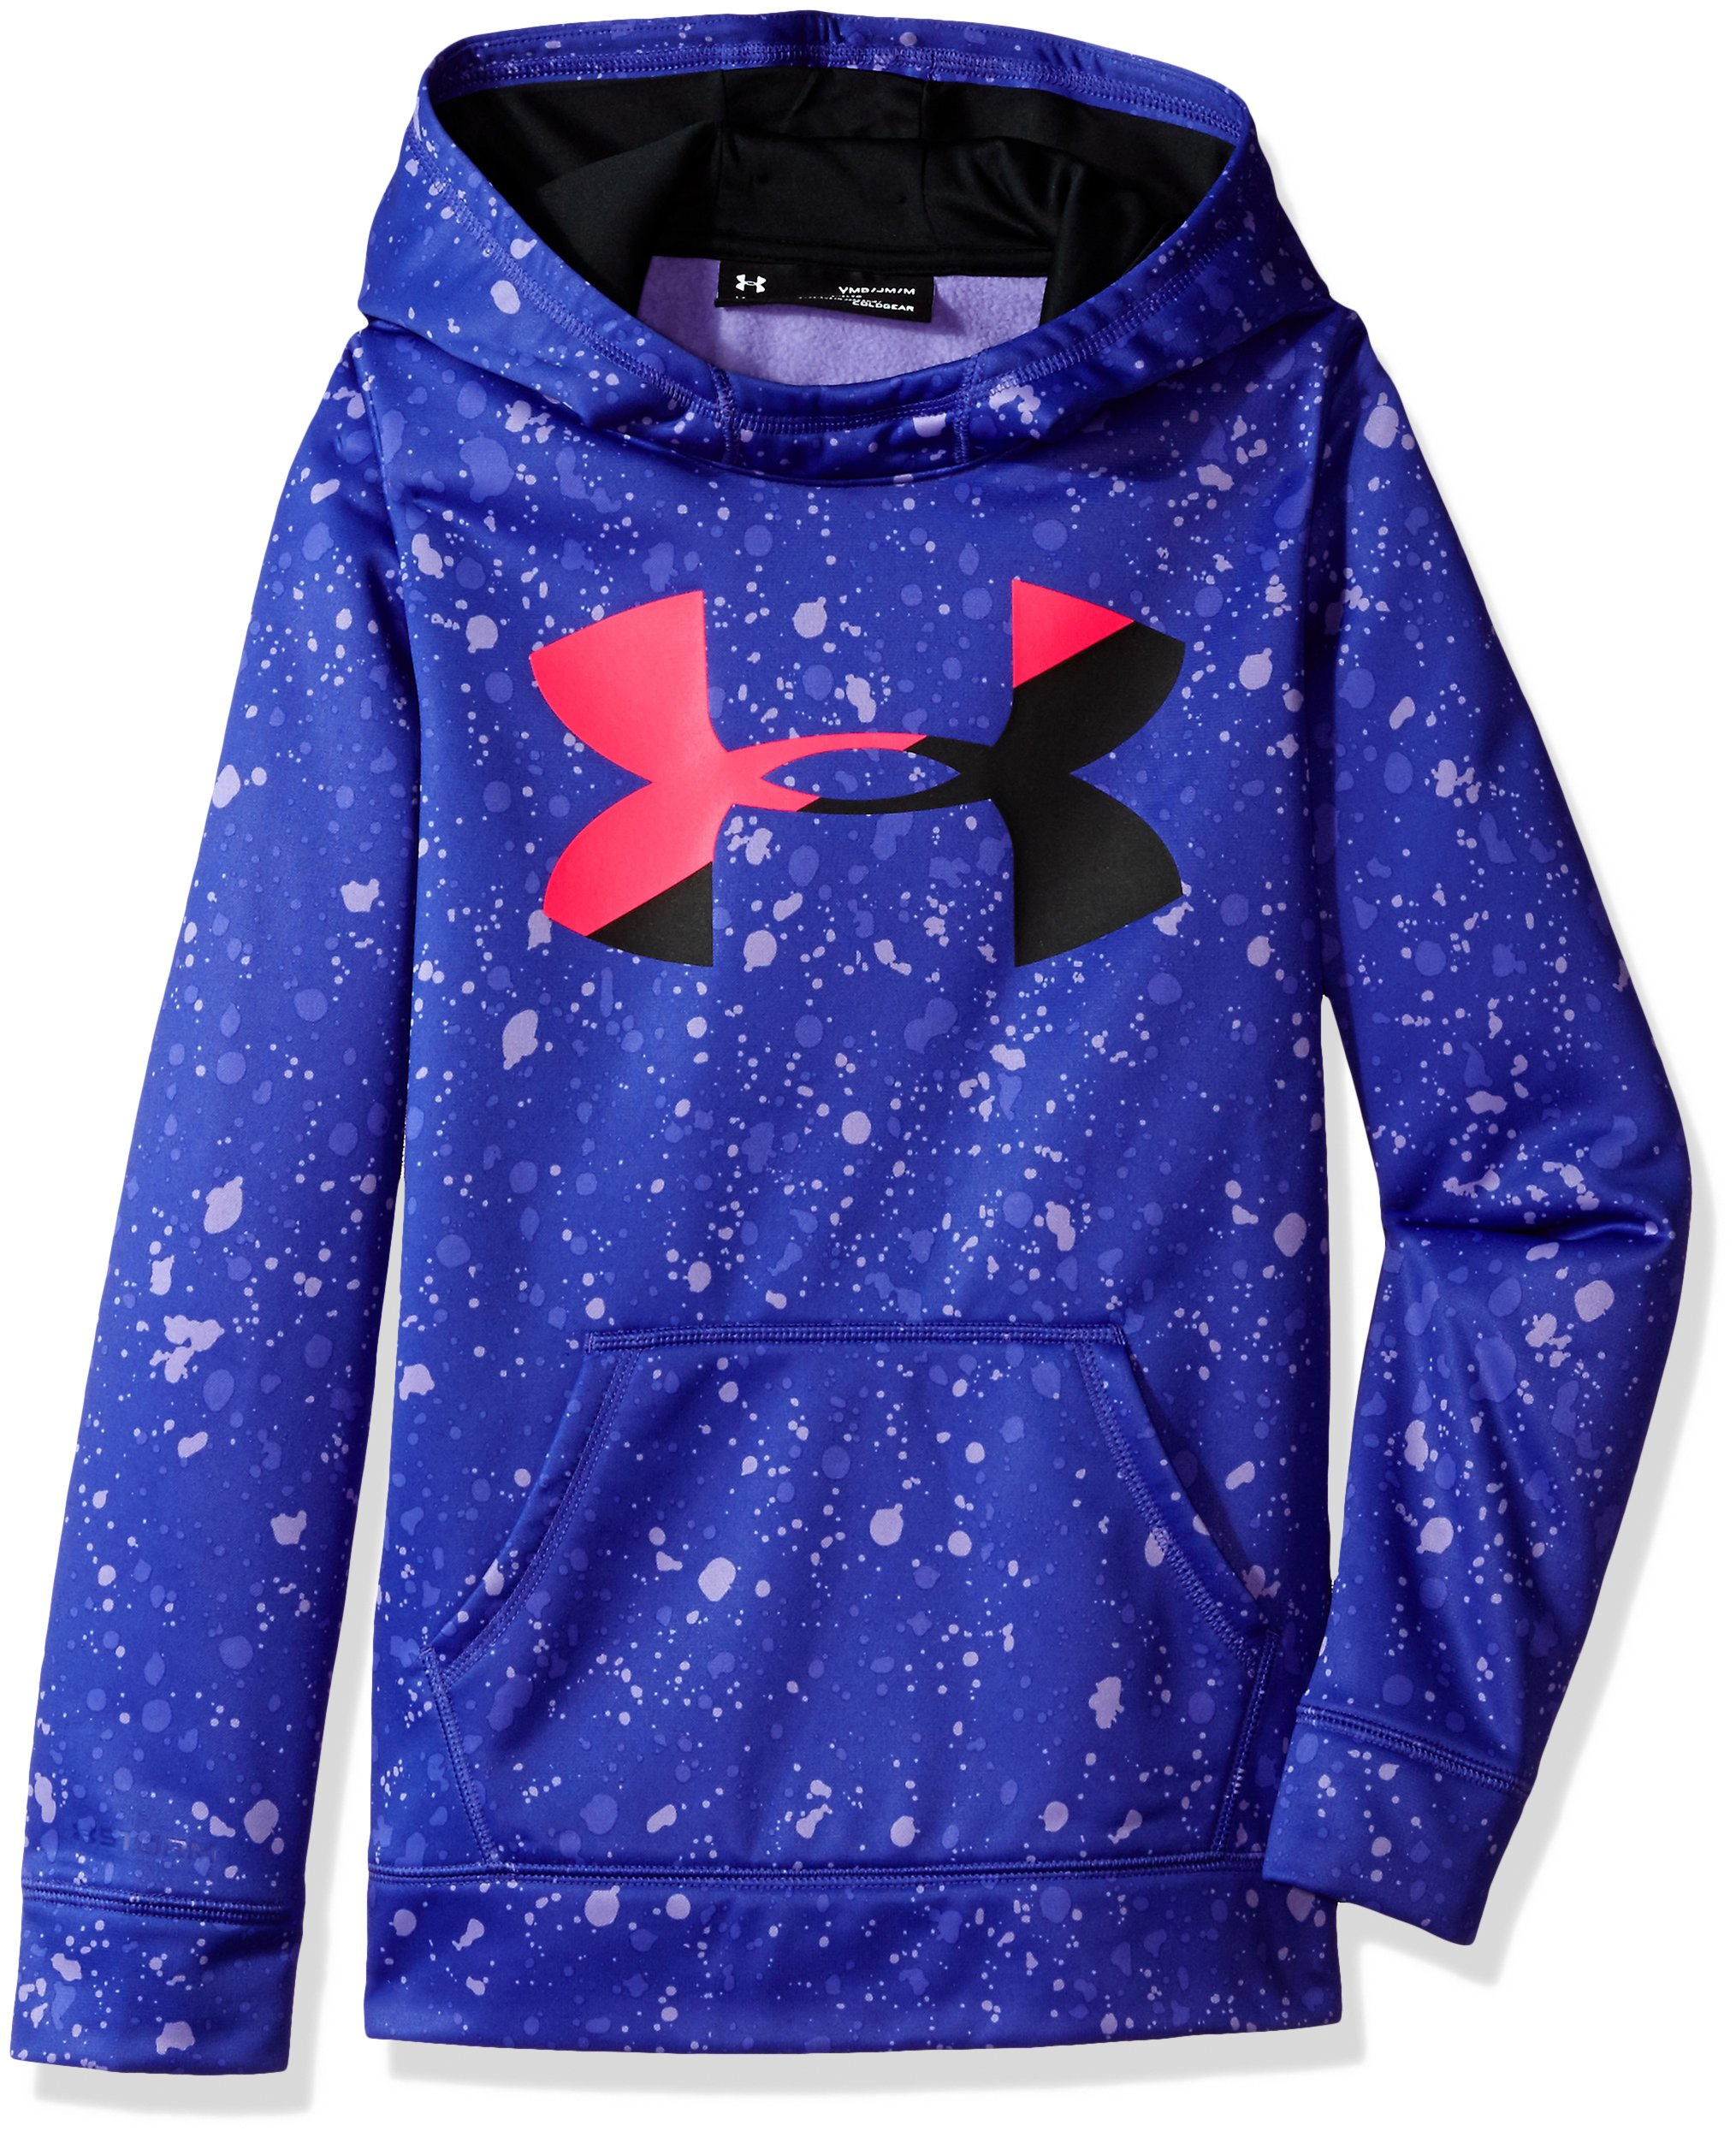 Under Armour Girls' Armour Fleece Big Logo Novelty Hoodie,Constellation Purple /Black, Youth X-Small by Under Armour